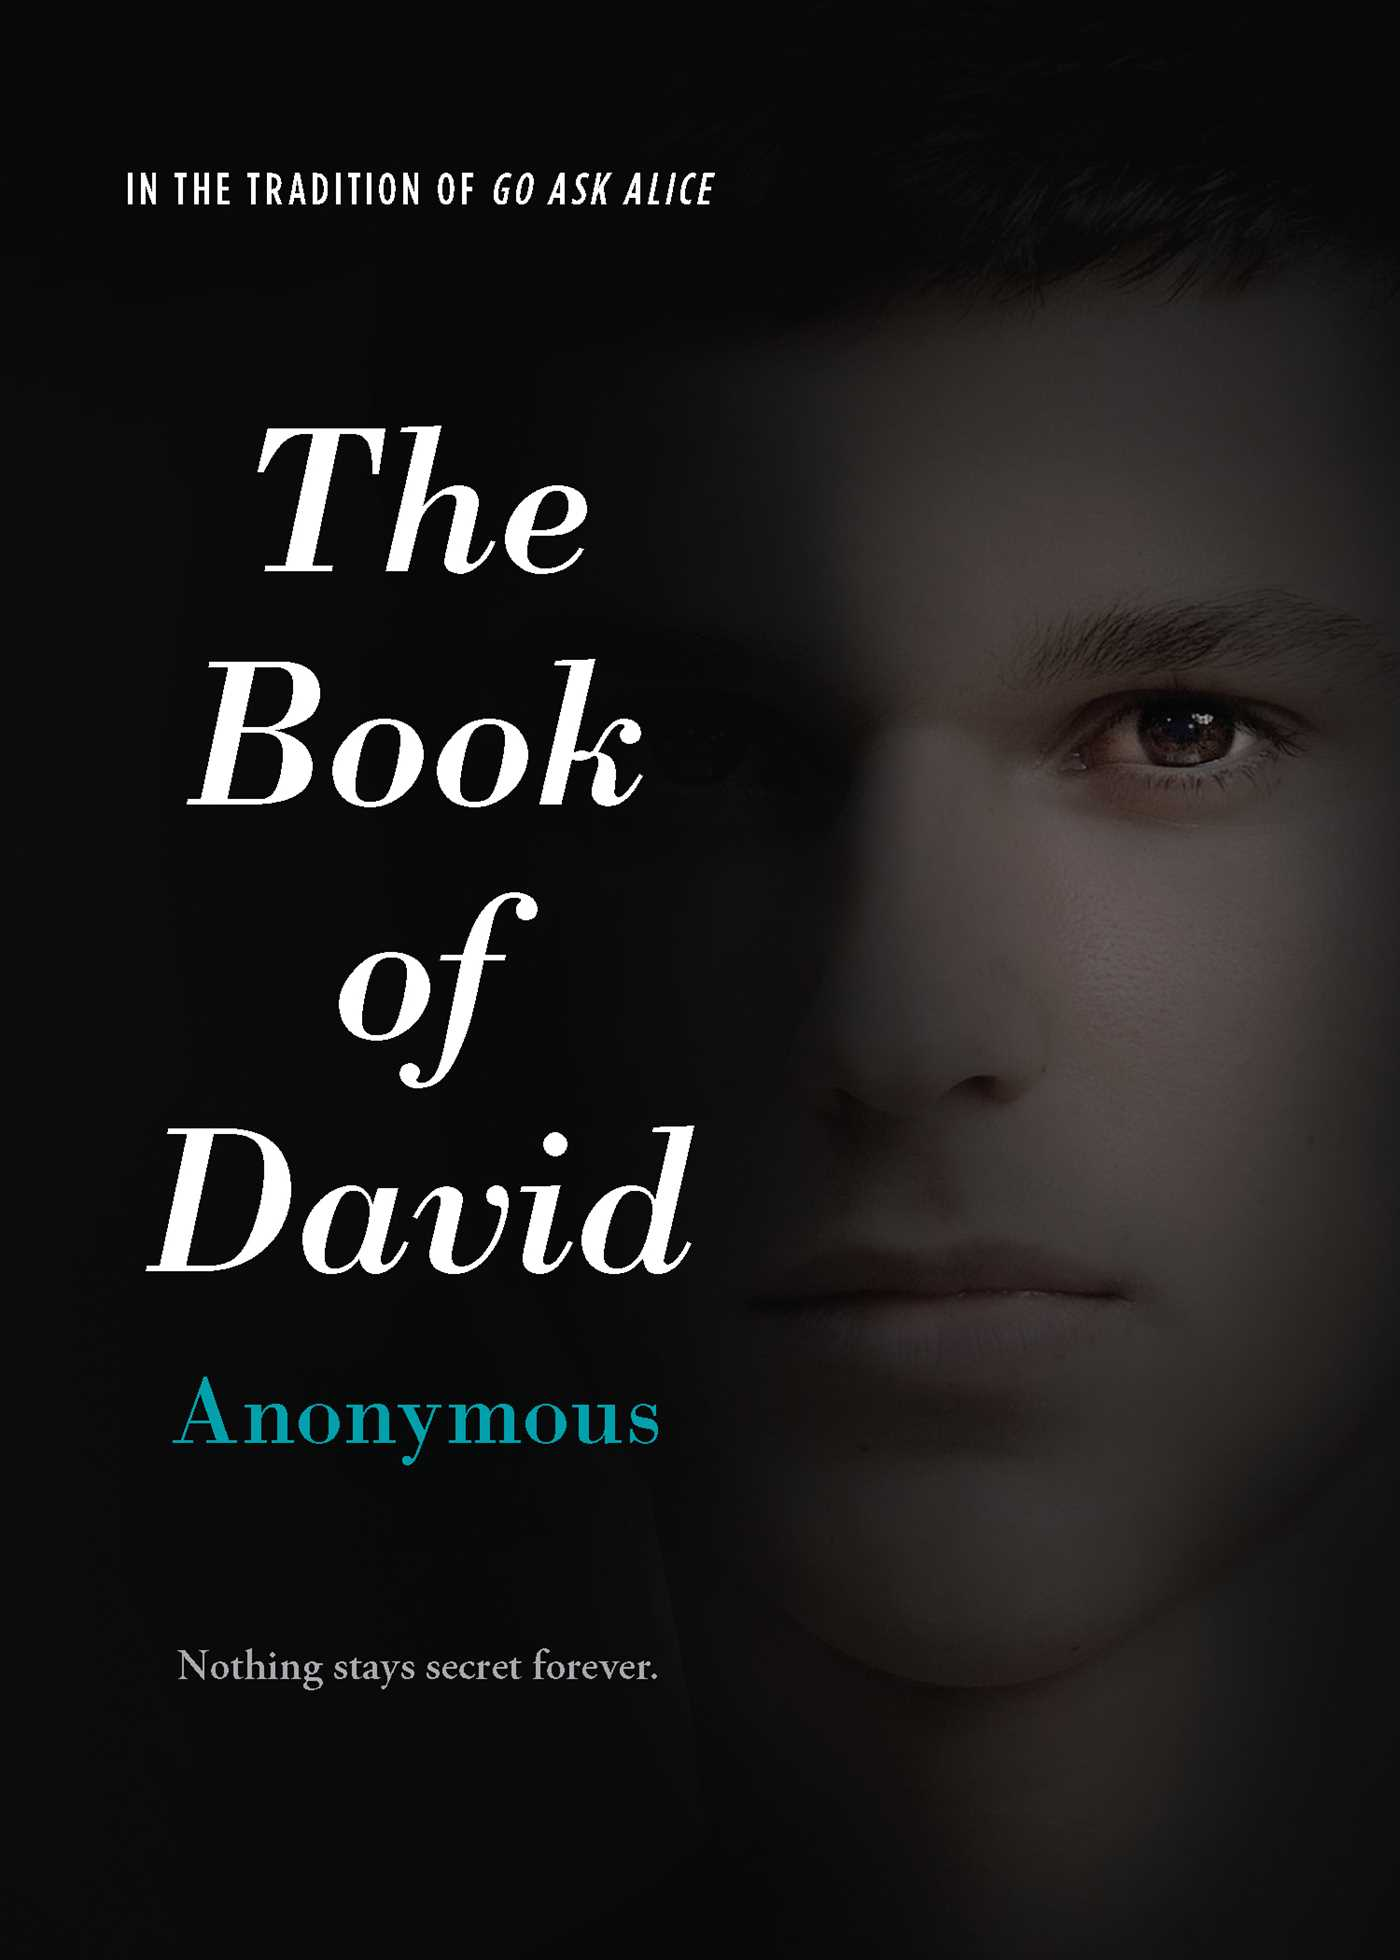 Book-of-david-9781442489851_hr